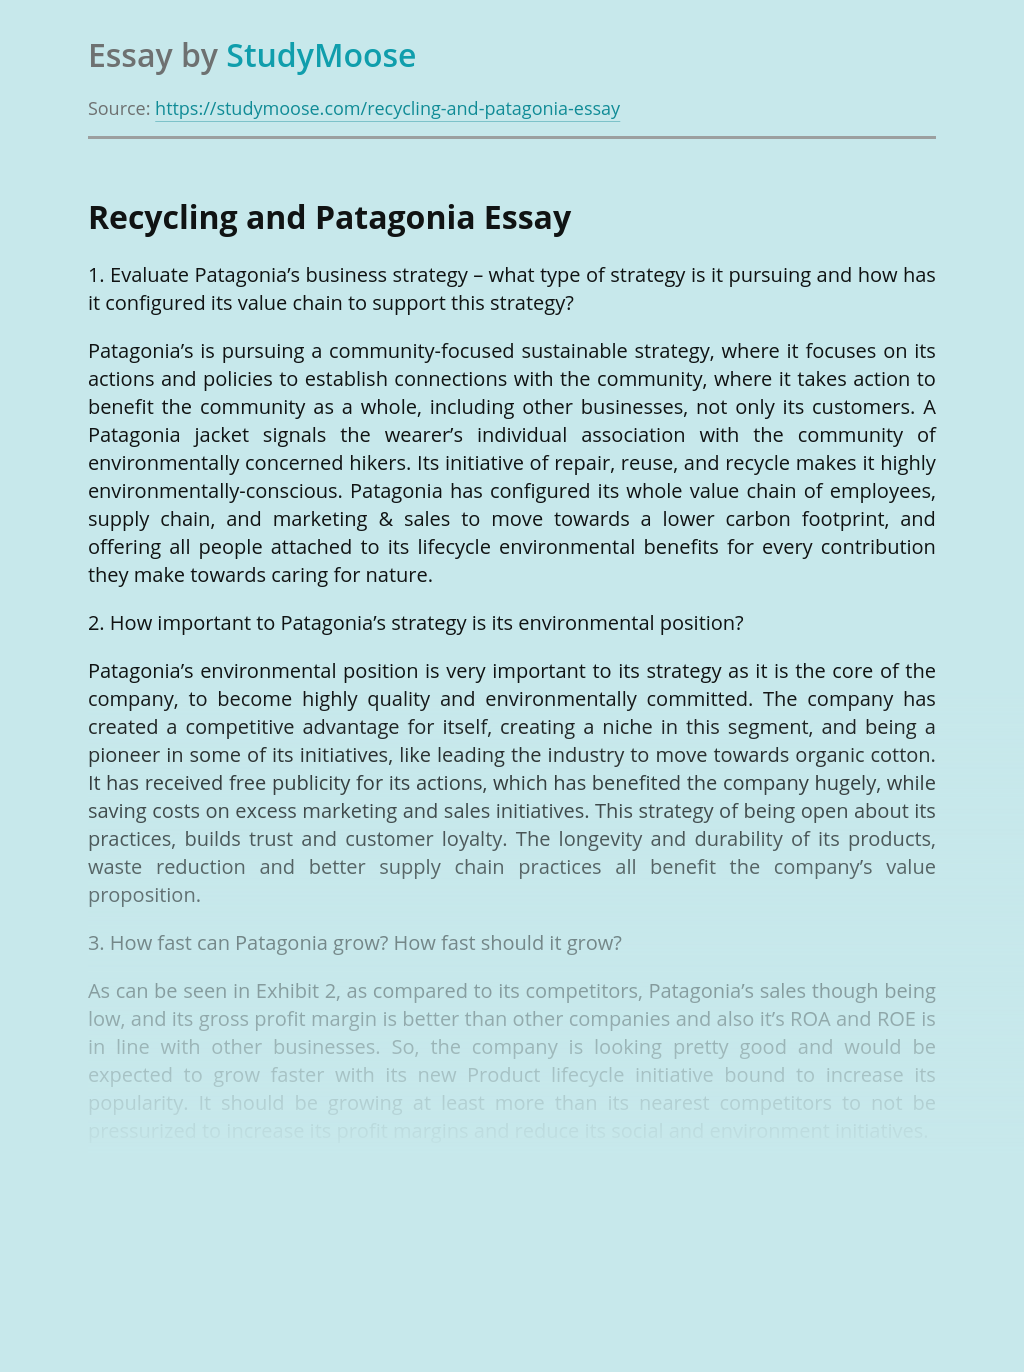 Recycling and Patagonia